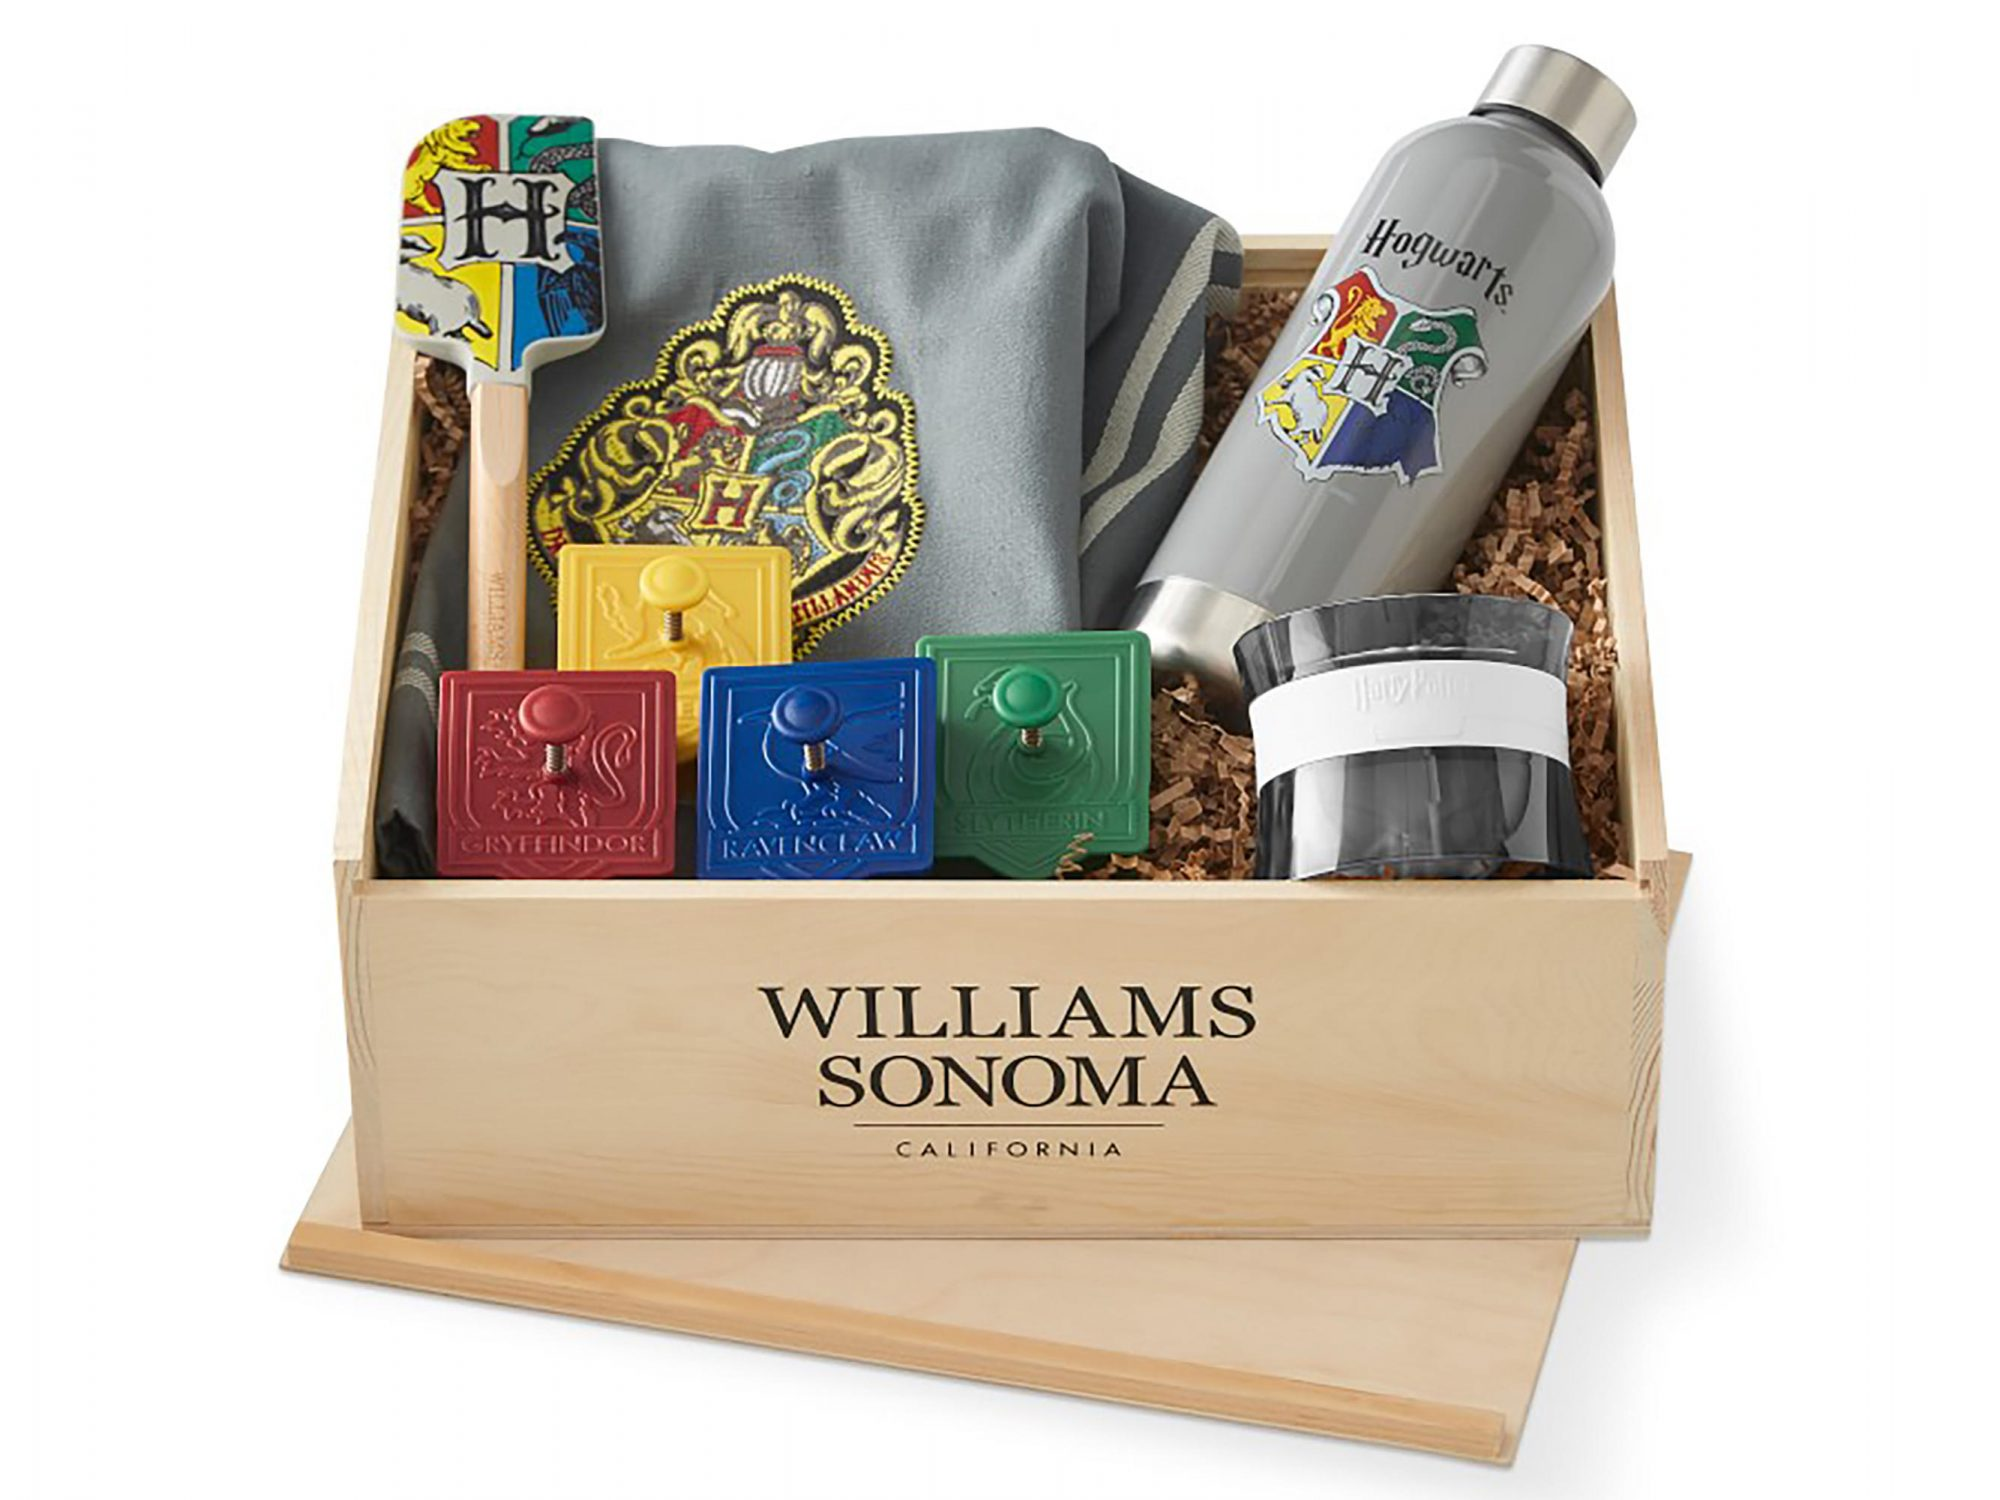 Williams Sonoma Adds New Harry Potter Items Just in Time for Holidays 1810w-HP-Gift-set